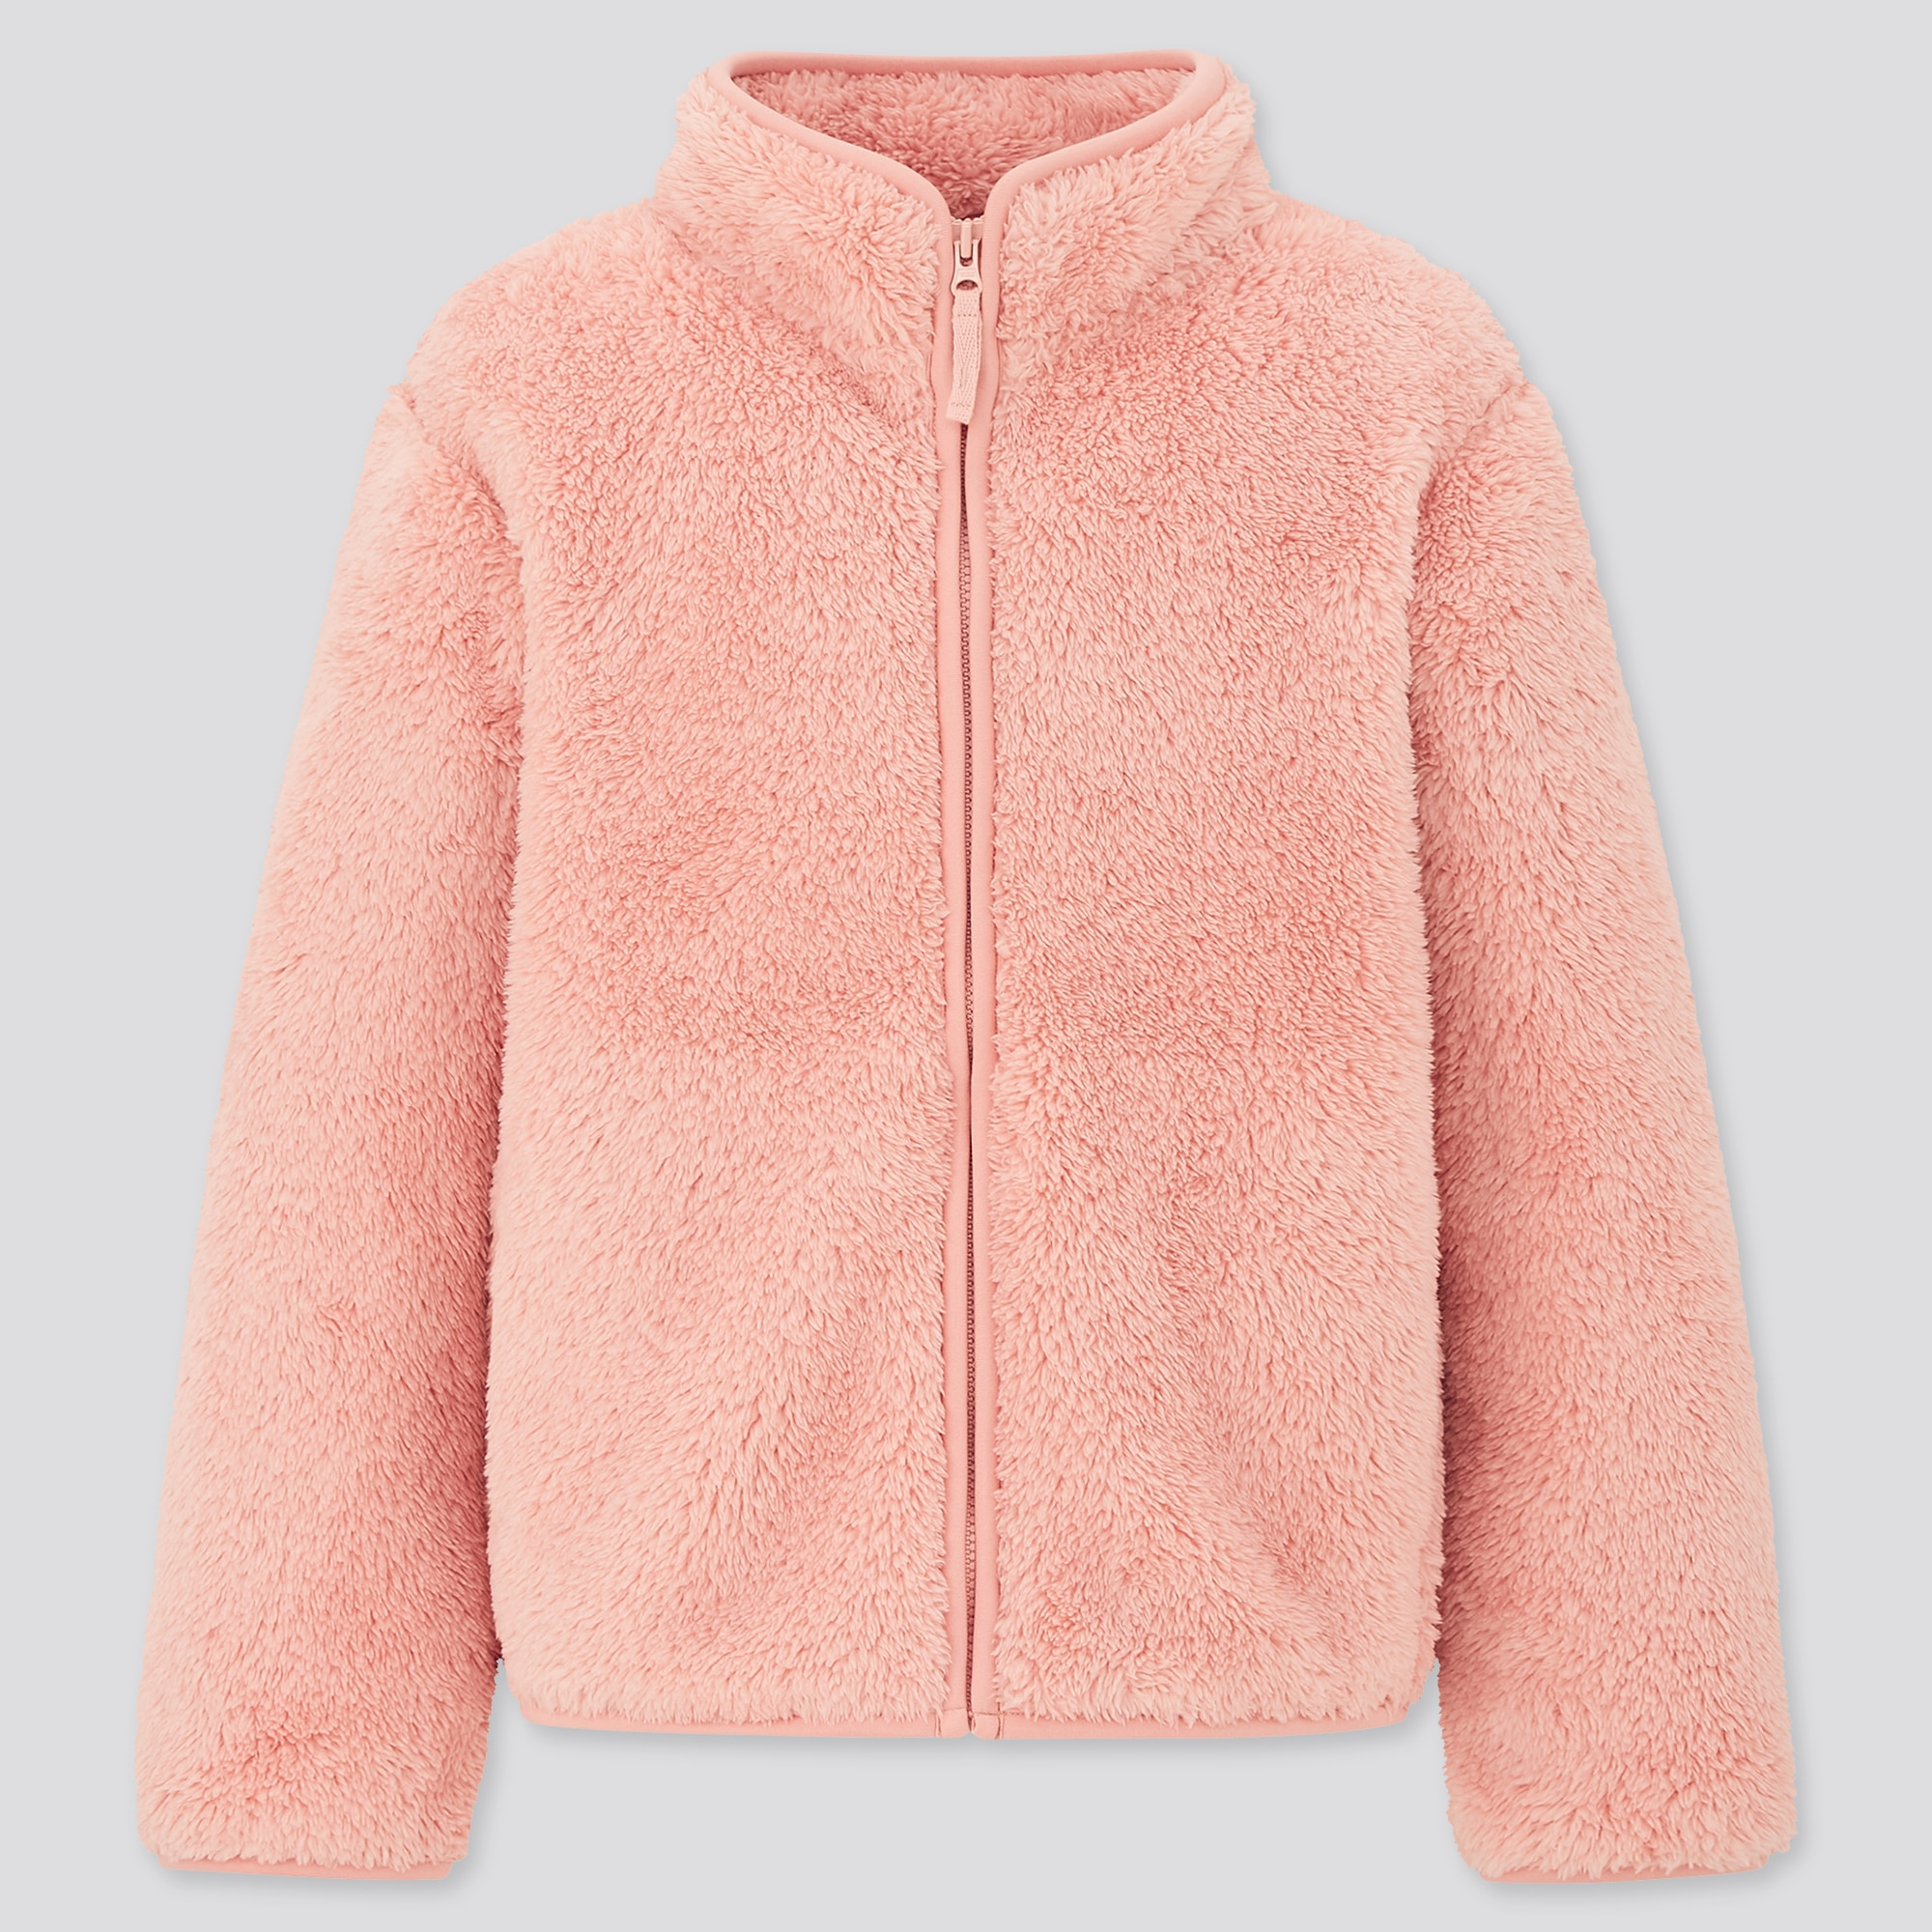 KIDS FLUFFY YARN FLEECE LONG-SLEEVE JACKET